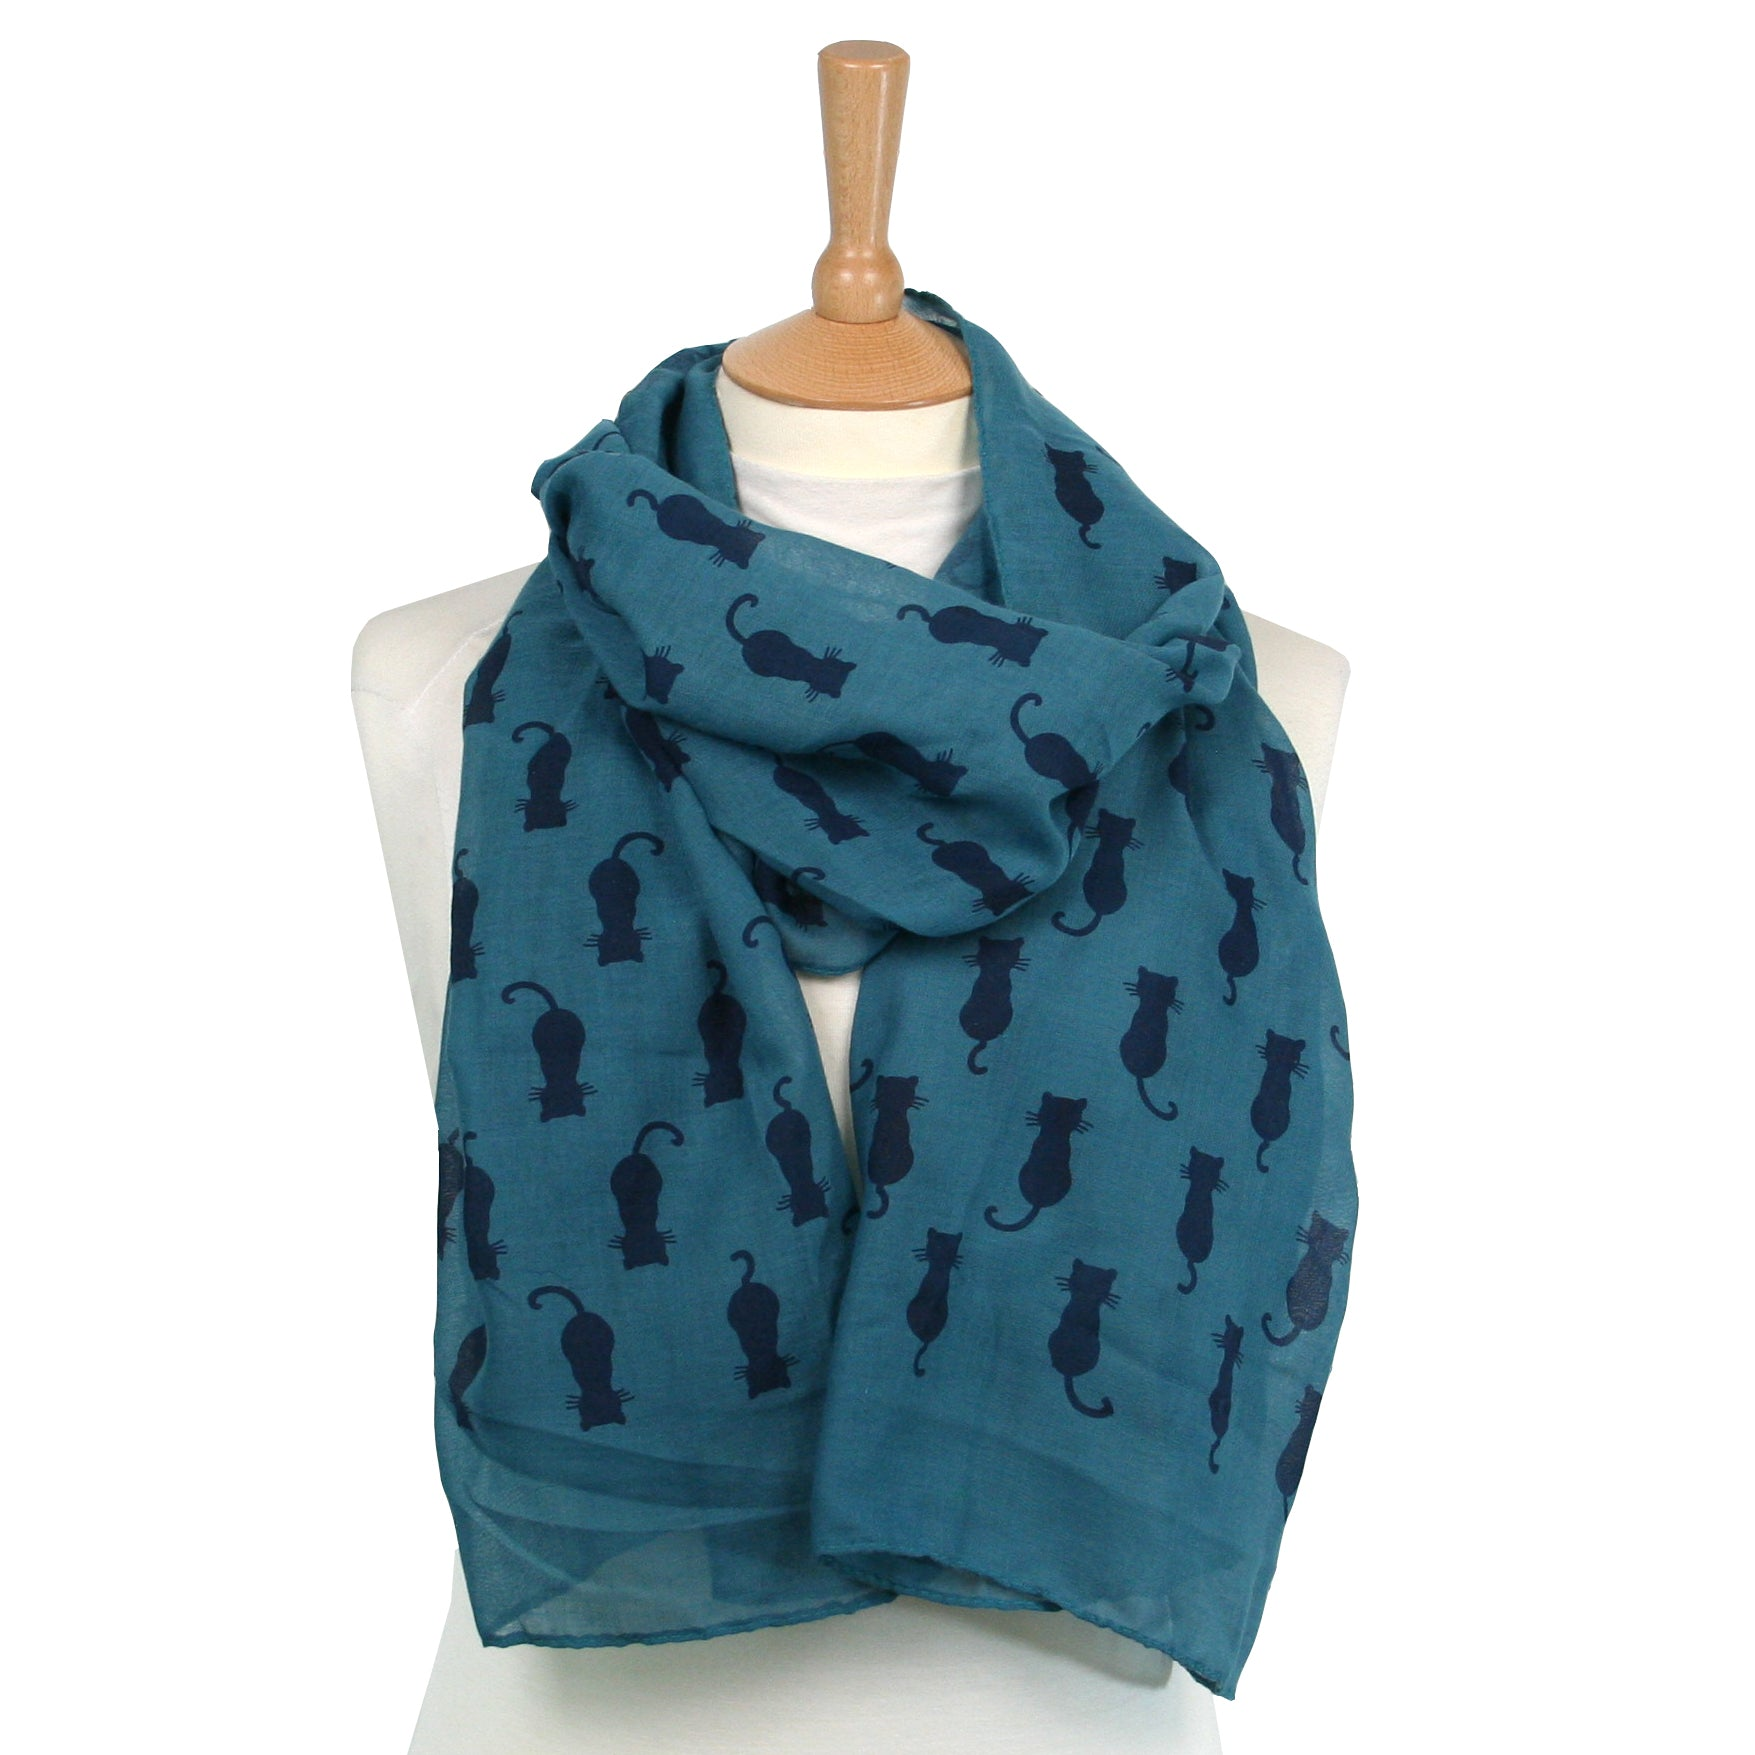 Black Cat with Whiskers Teal Scarf